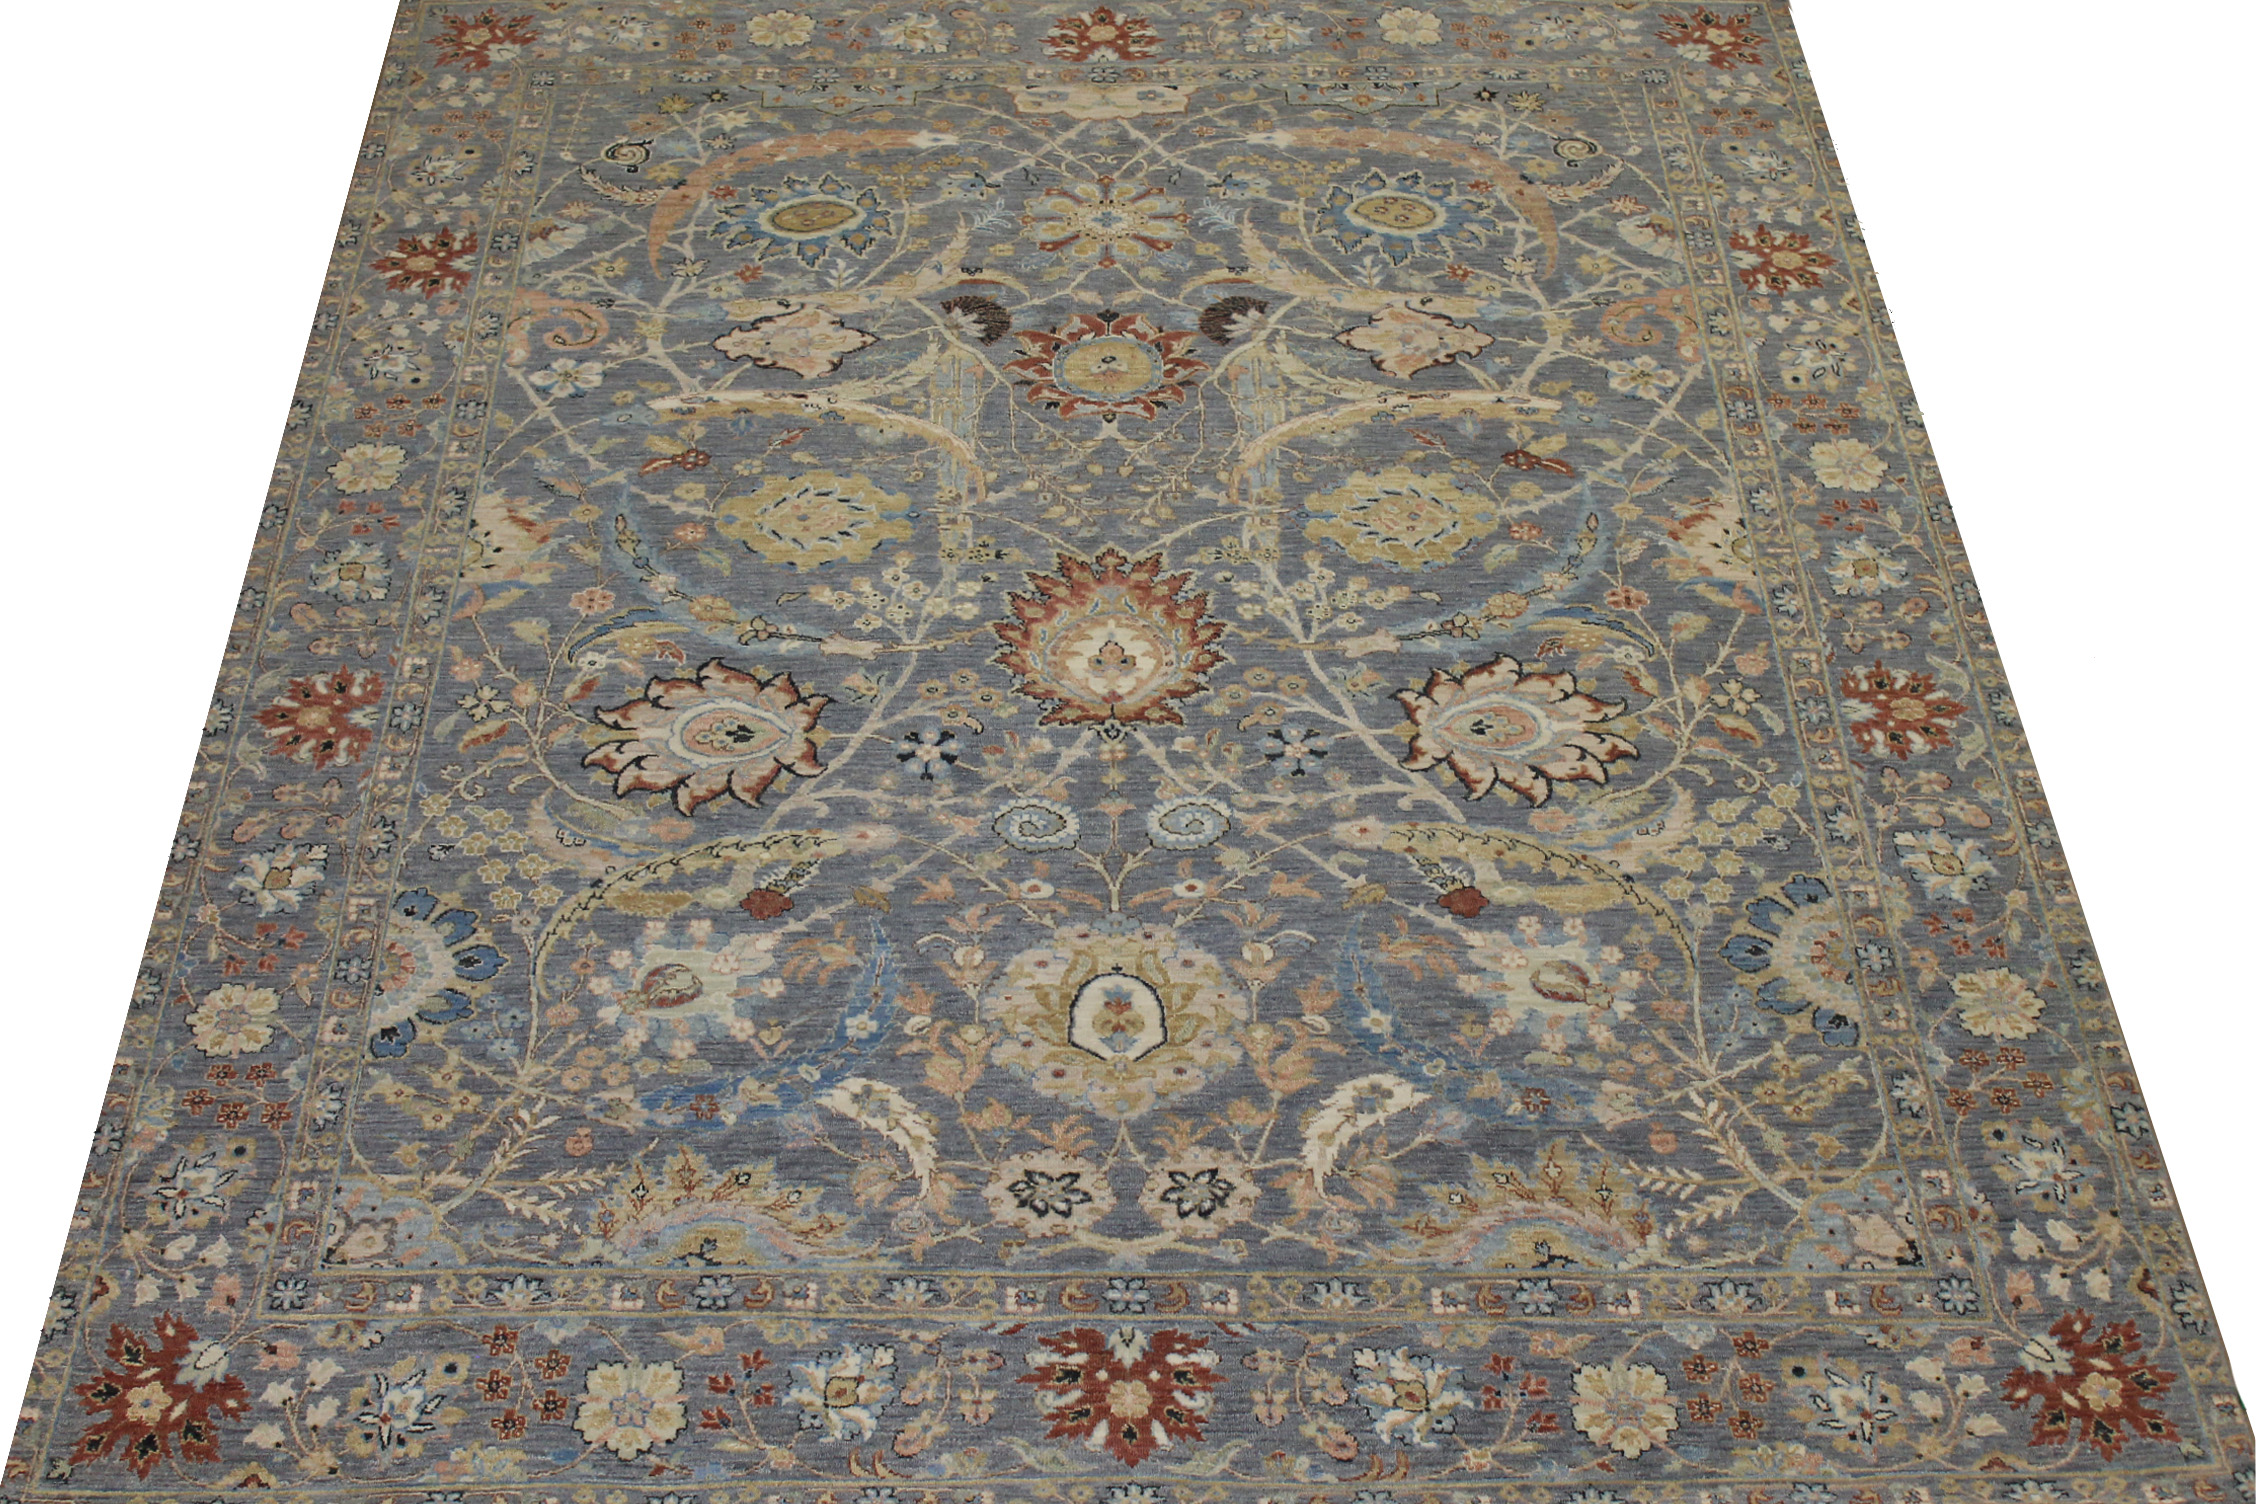 8x10 Traditional Hand Knotted Wool Area Rug - MR024598